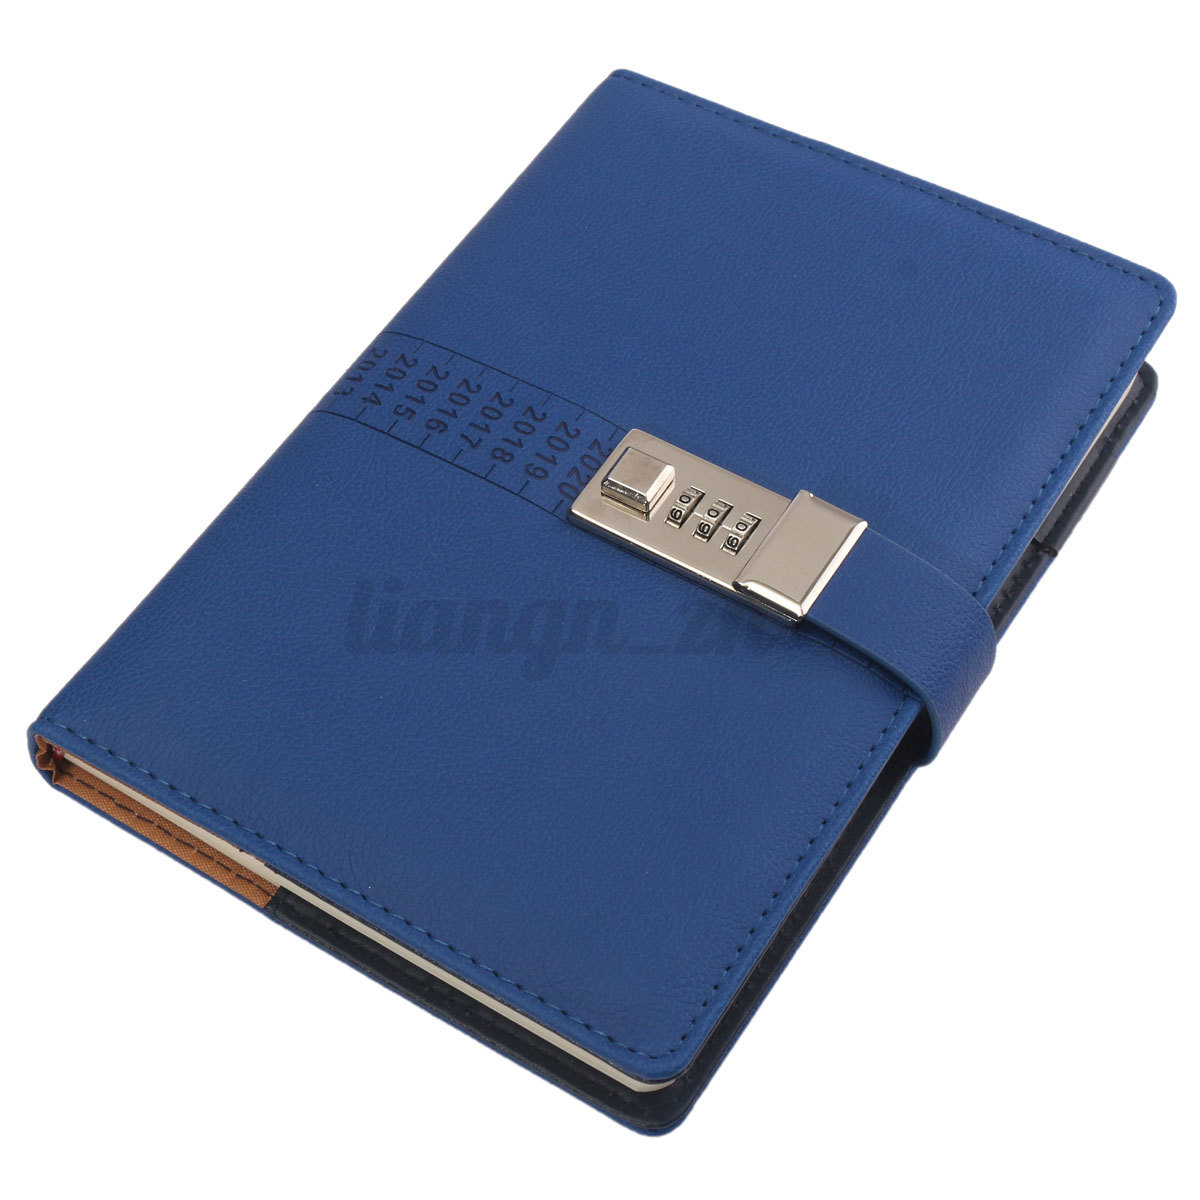 Agenda Bloc notes Carnet Cahier Calepin Notebook Journal Intime